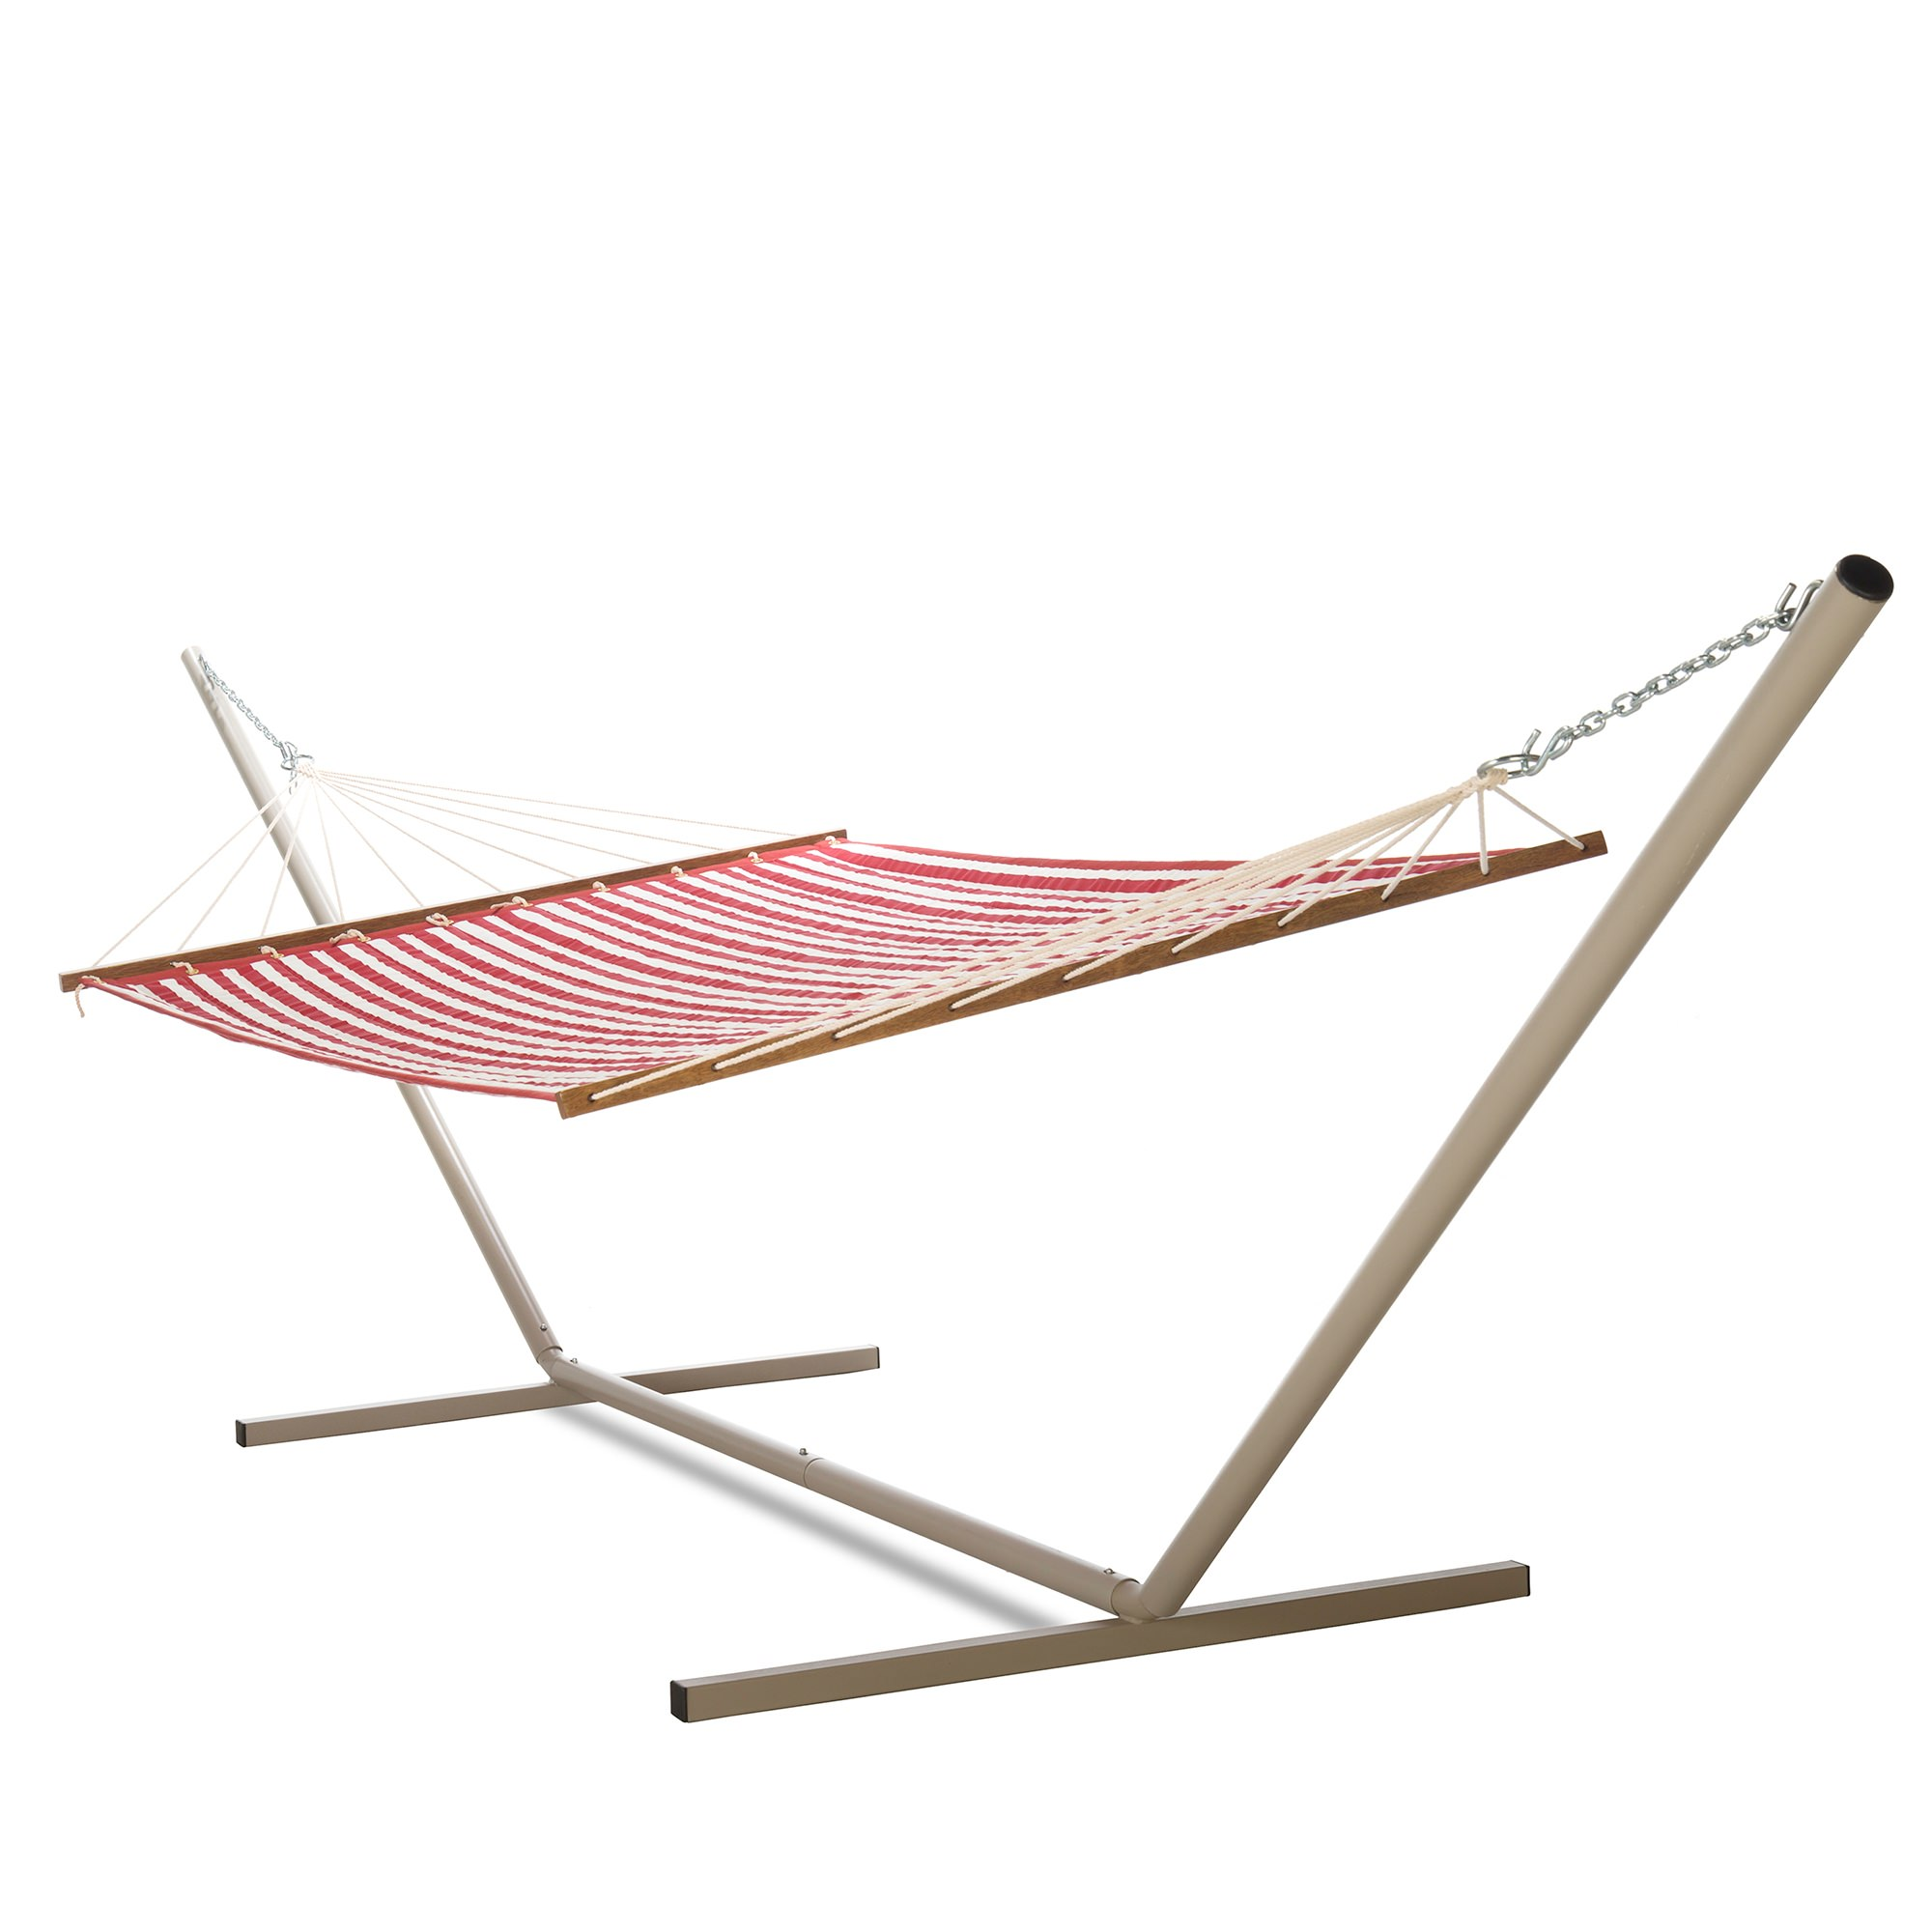 large 2 person soft polyester cabana red quilted hammock with stand quilted hammock   cabana red  essentials   dfohome  rh   dfohome